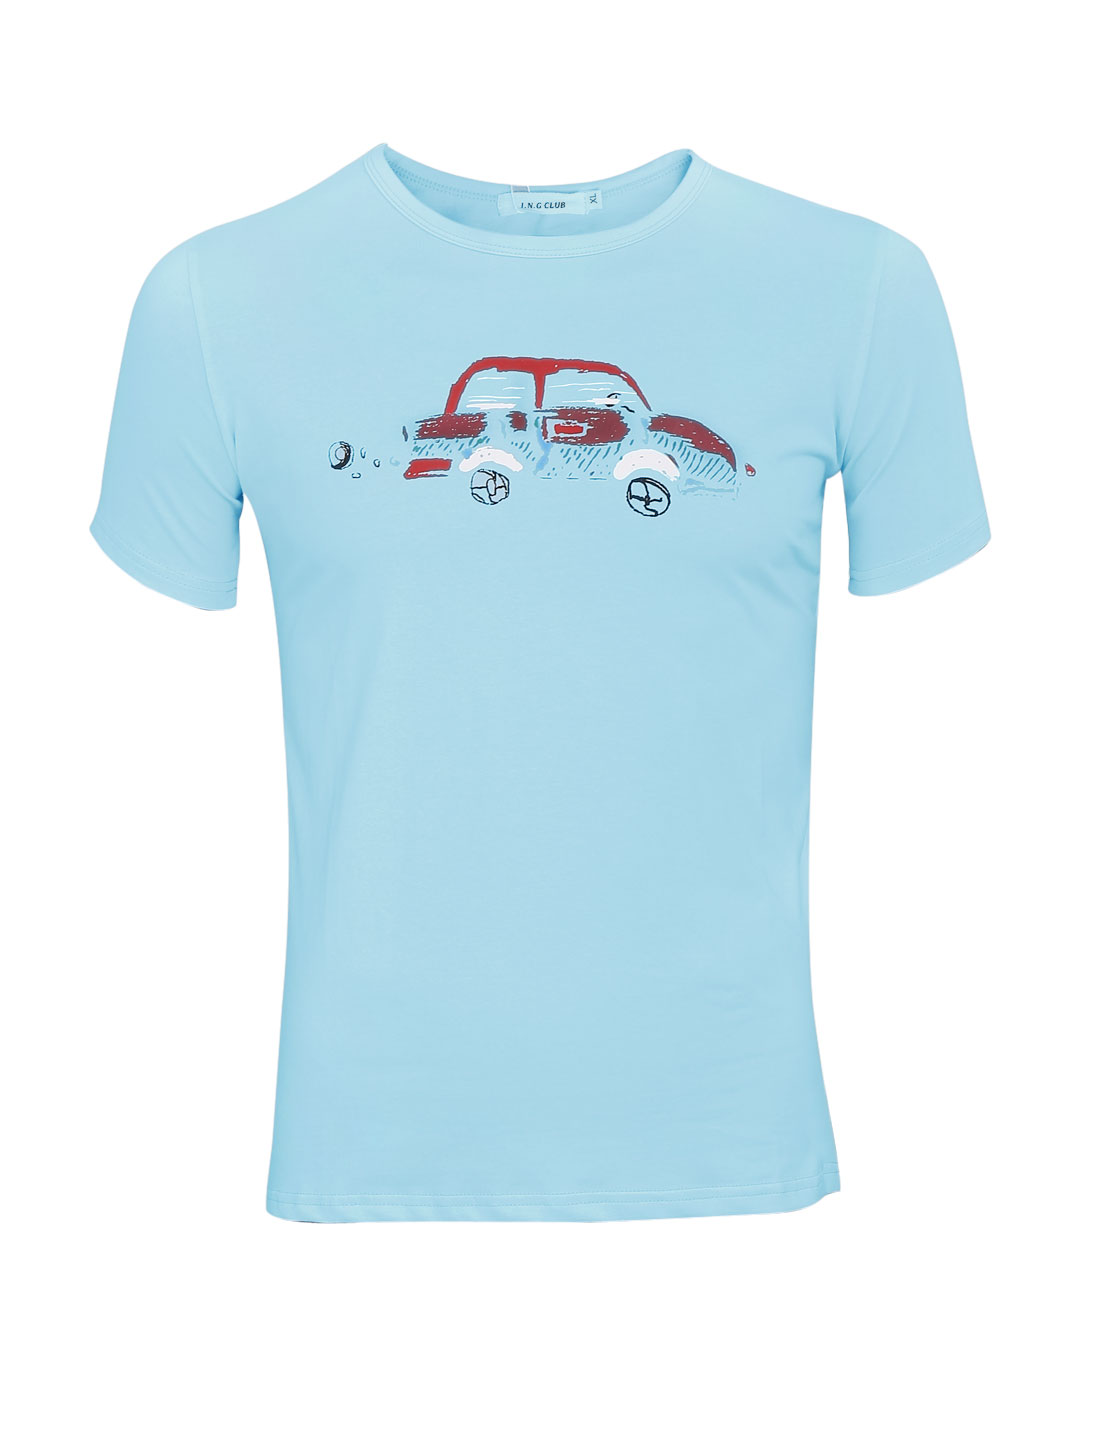 Men Slipover Short Sleeve Car Printed Cozy Fit T-Shirt Baby Blue S